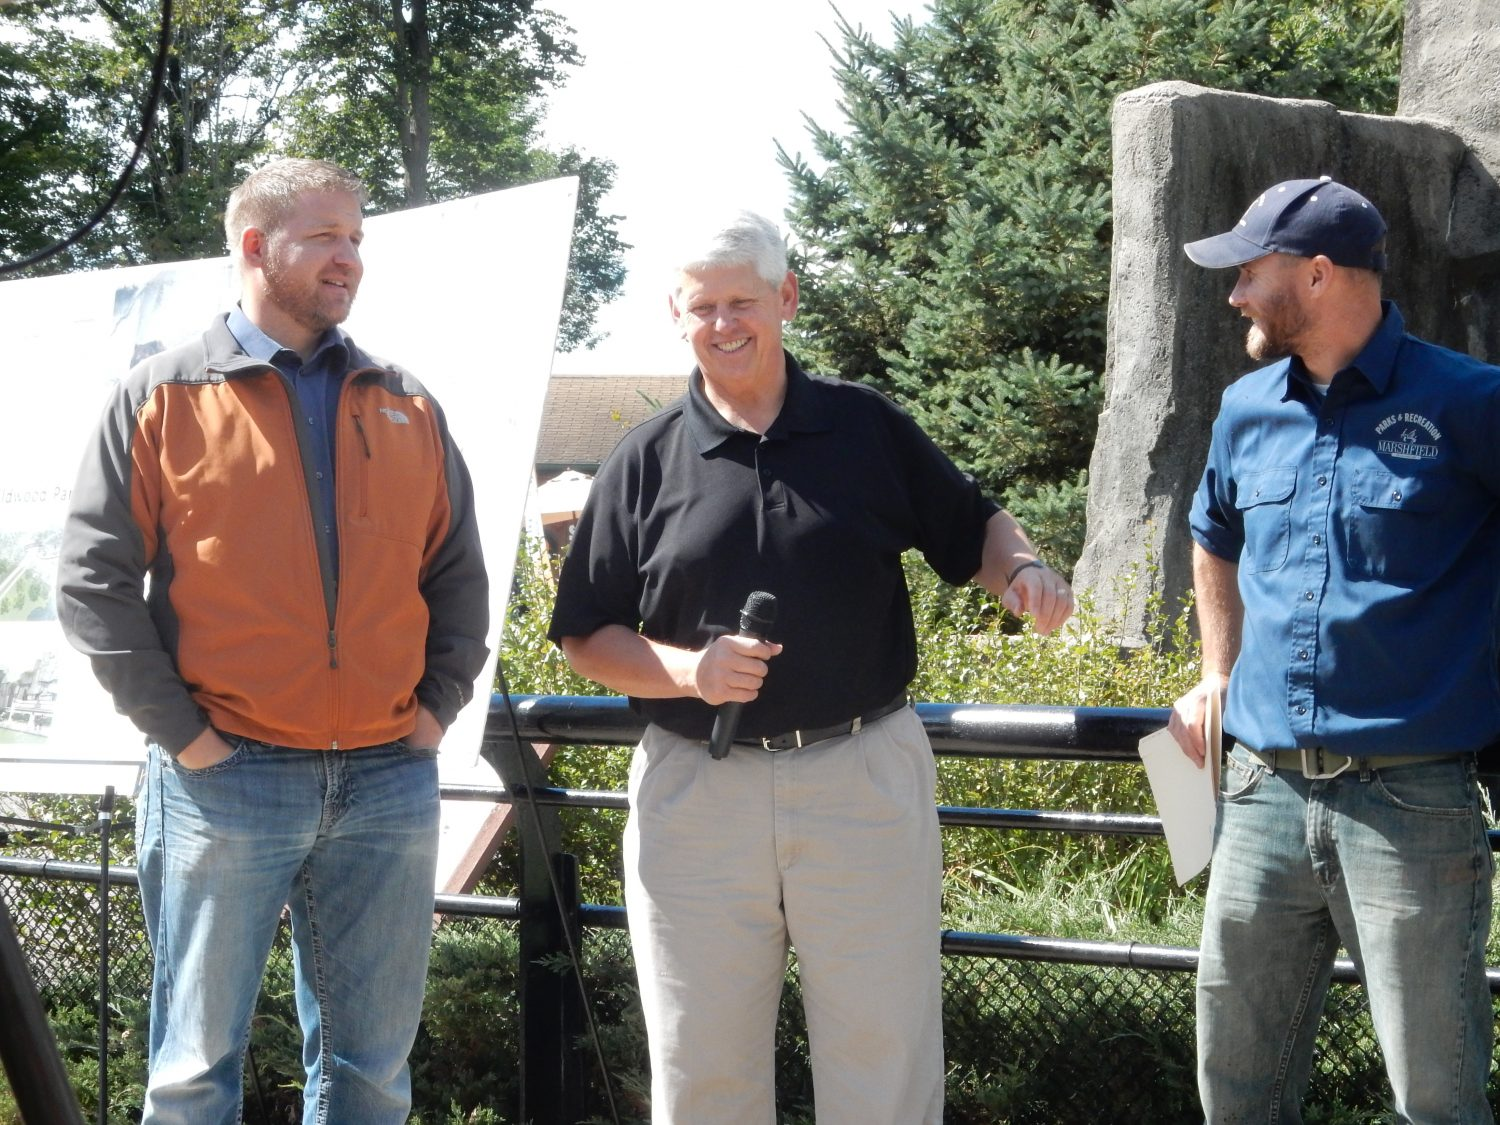 Mayor Chris Meyer, Parks and Rec Director Ed Englehart, and Zookeeper Steve Burns at the bear pen announcement.